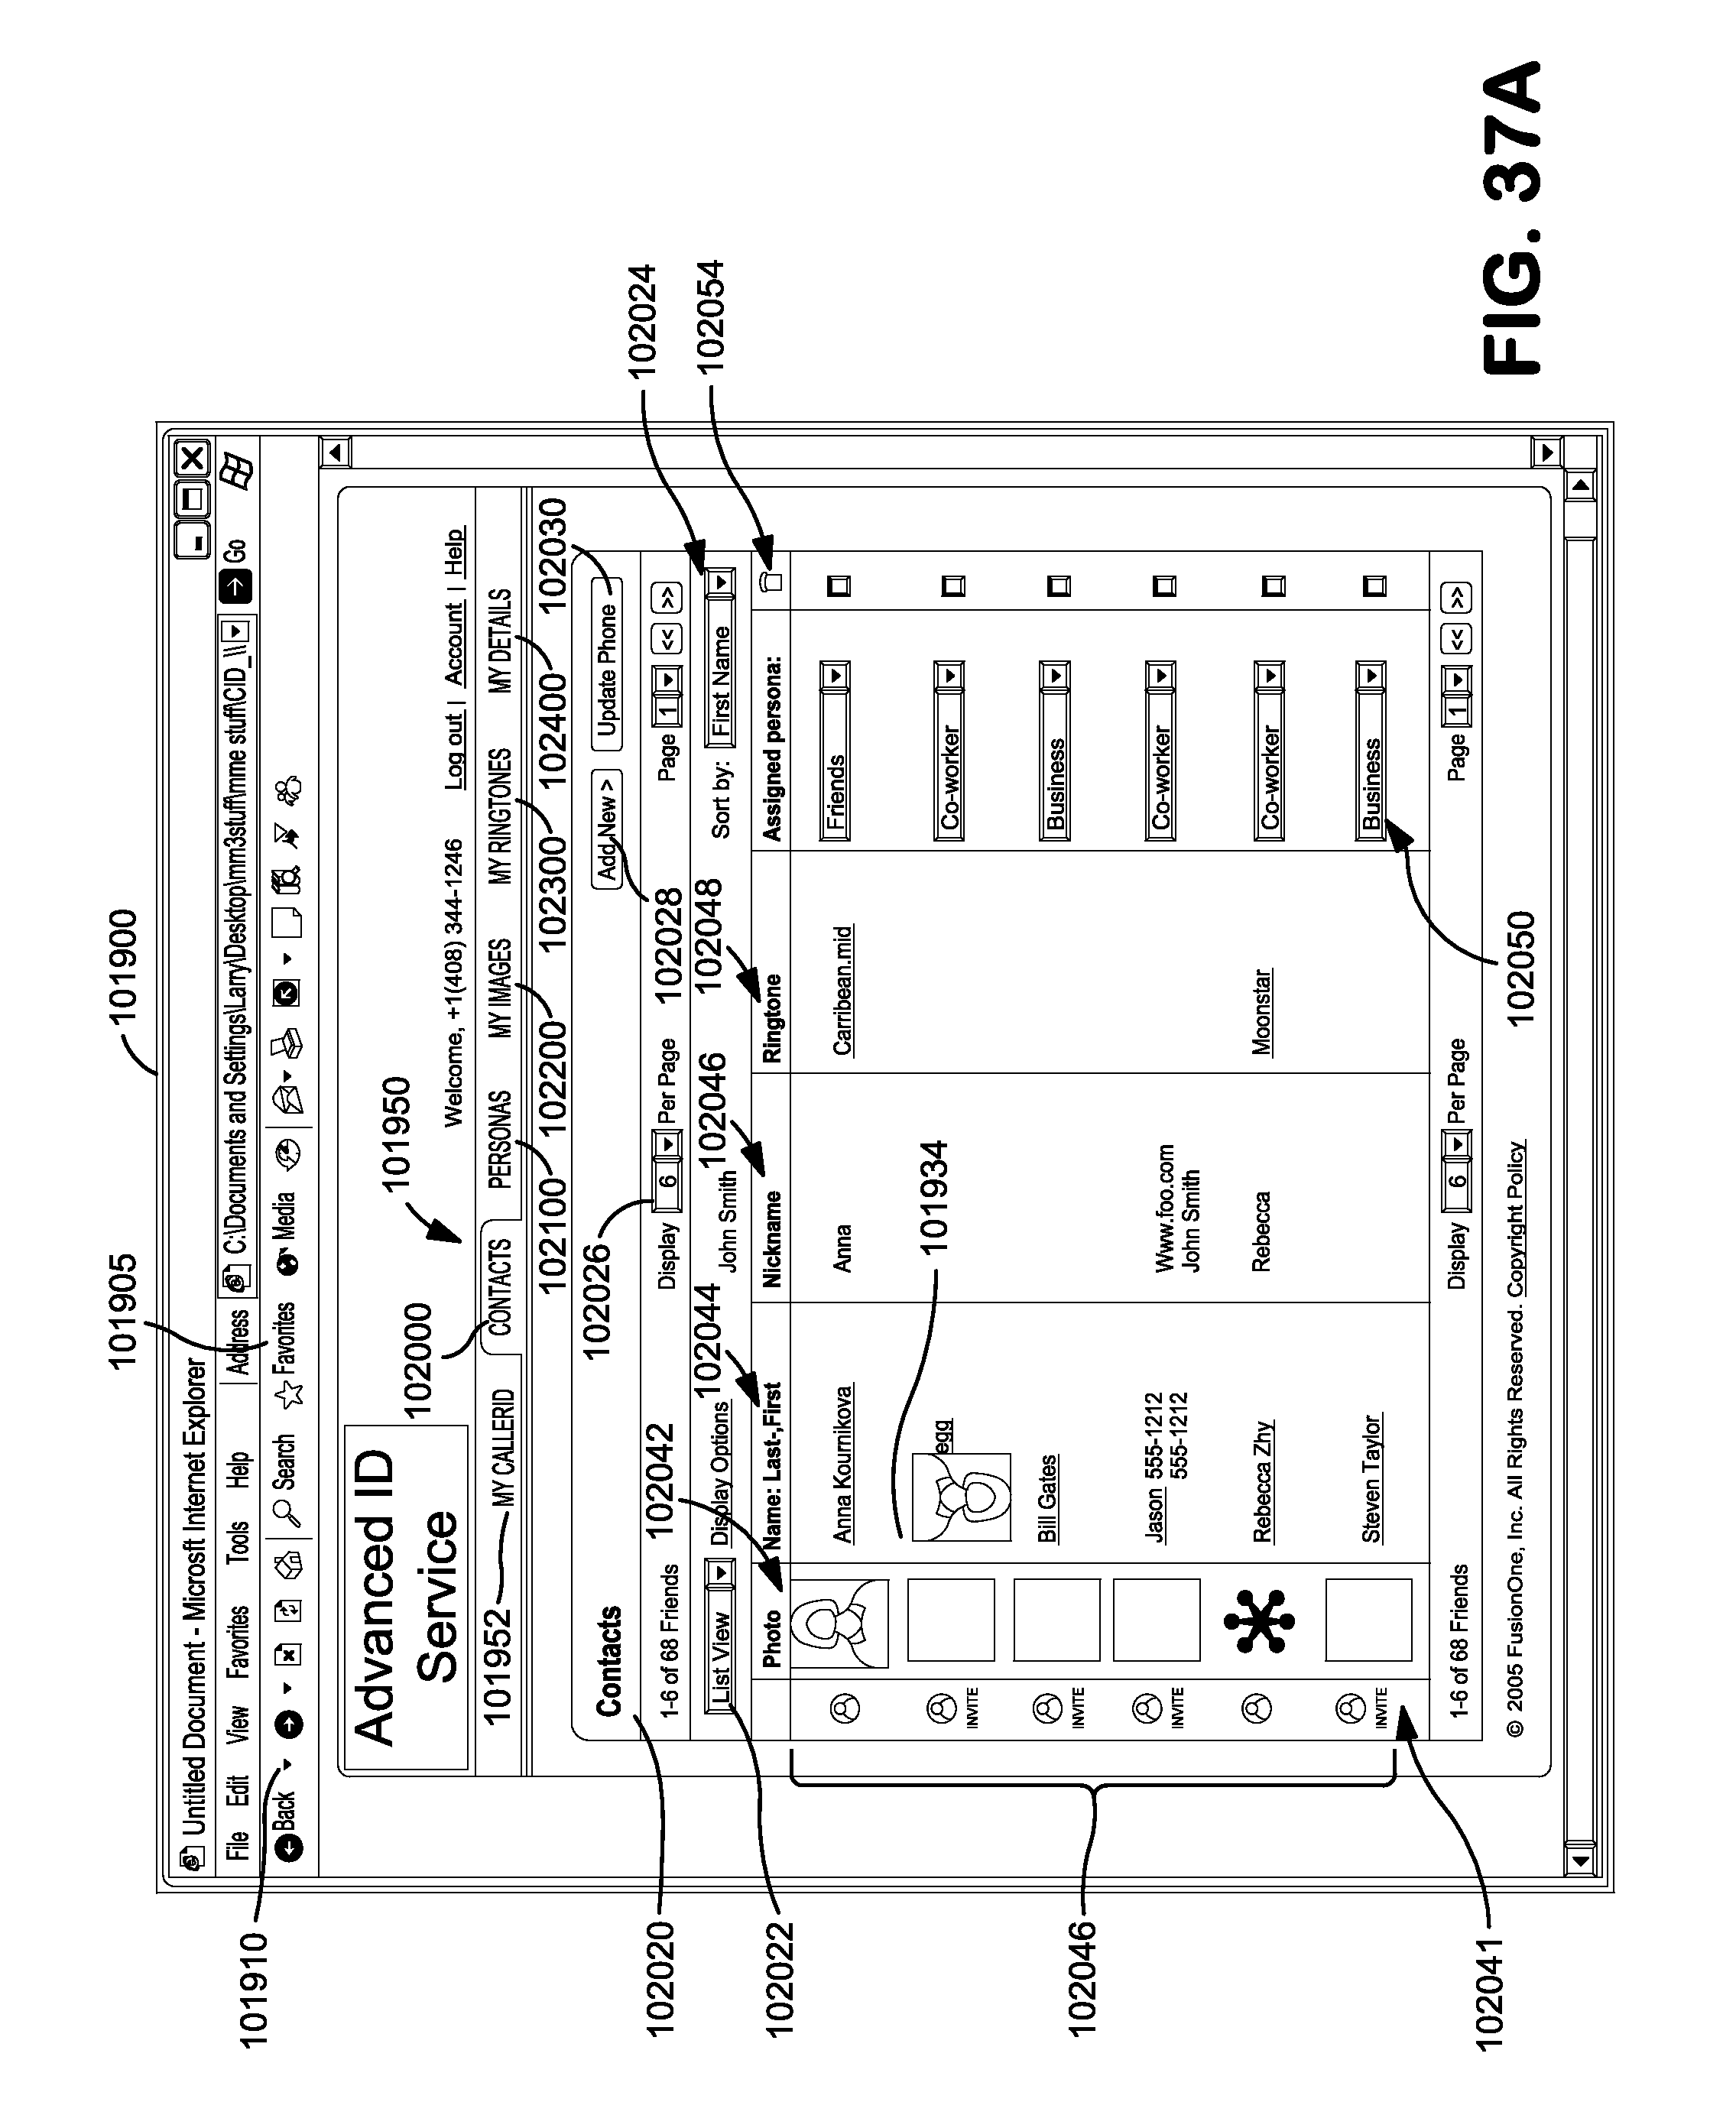 Patent Us8621025 Mobile Data Transfer And Synchronization System Audio Visual Ringtone Circuit Schematic Diagram Drawing